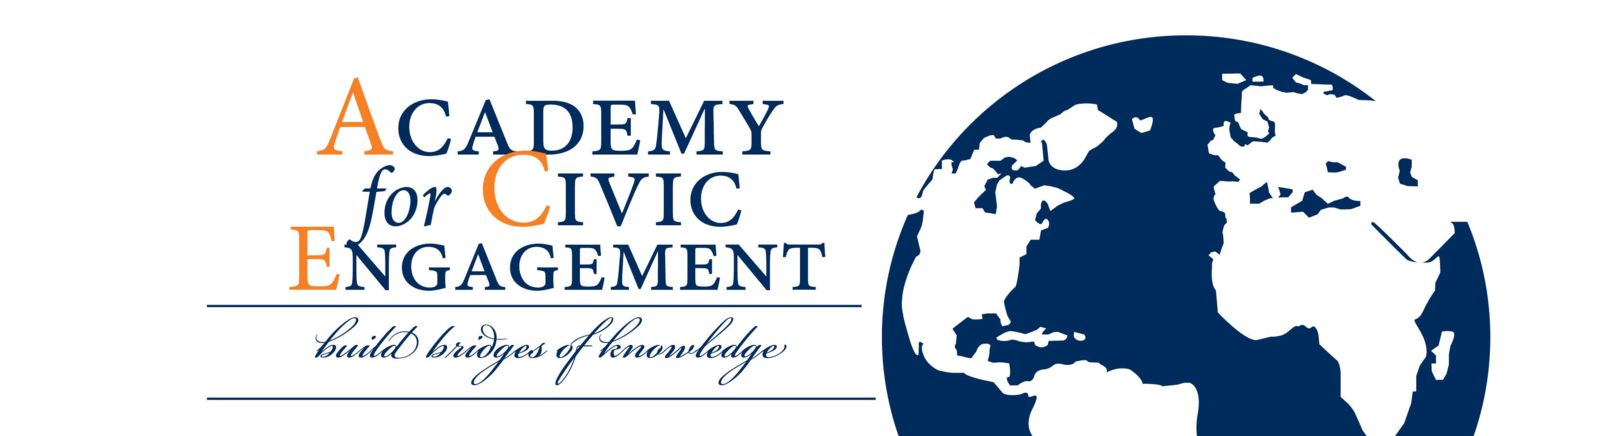 Academy of Civic Engagement logo